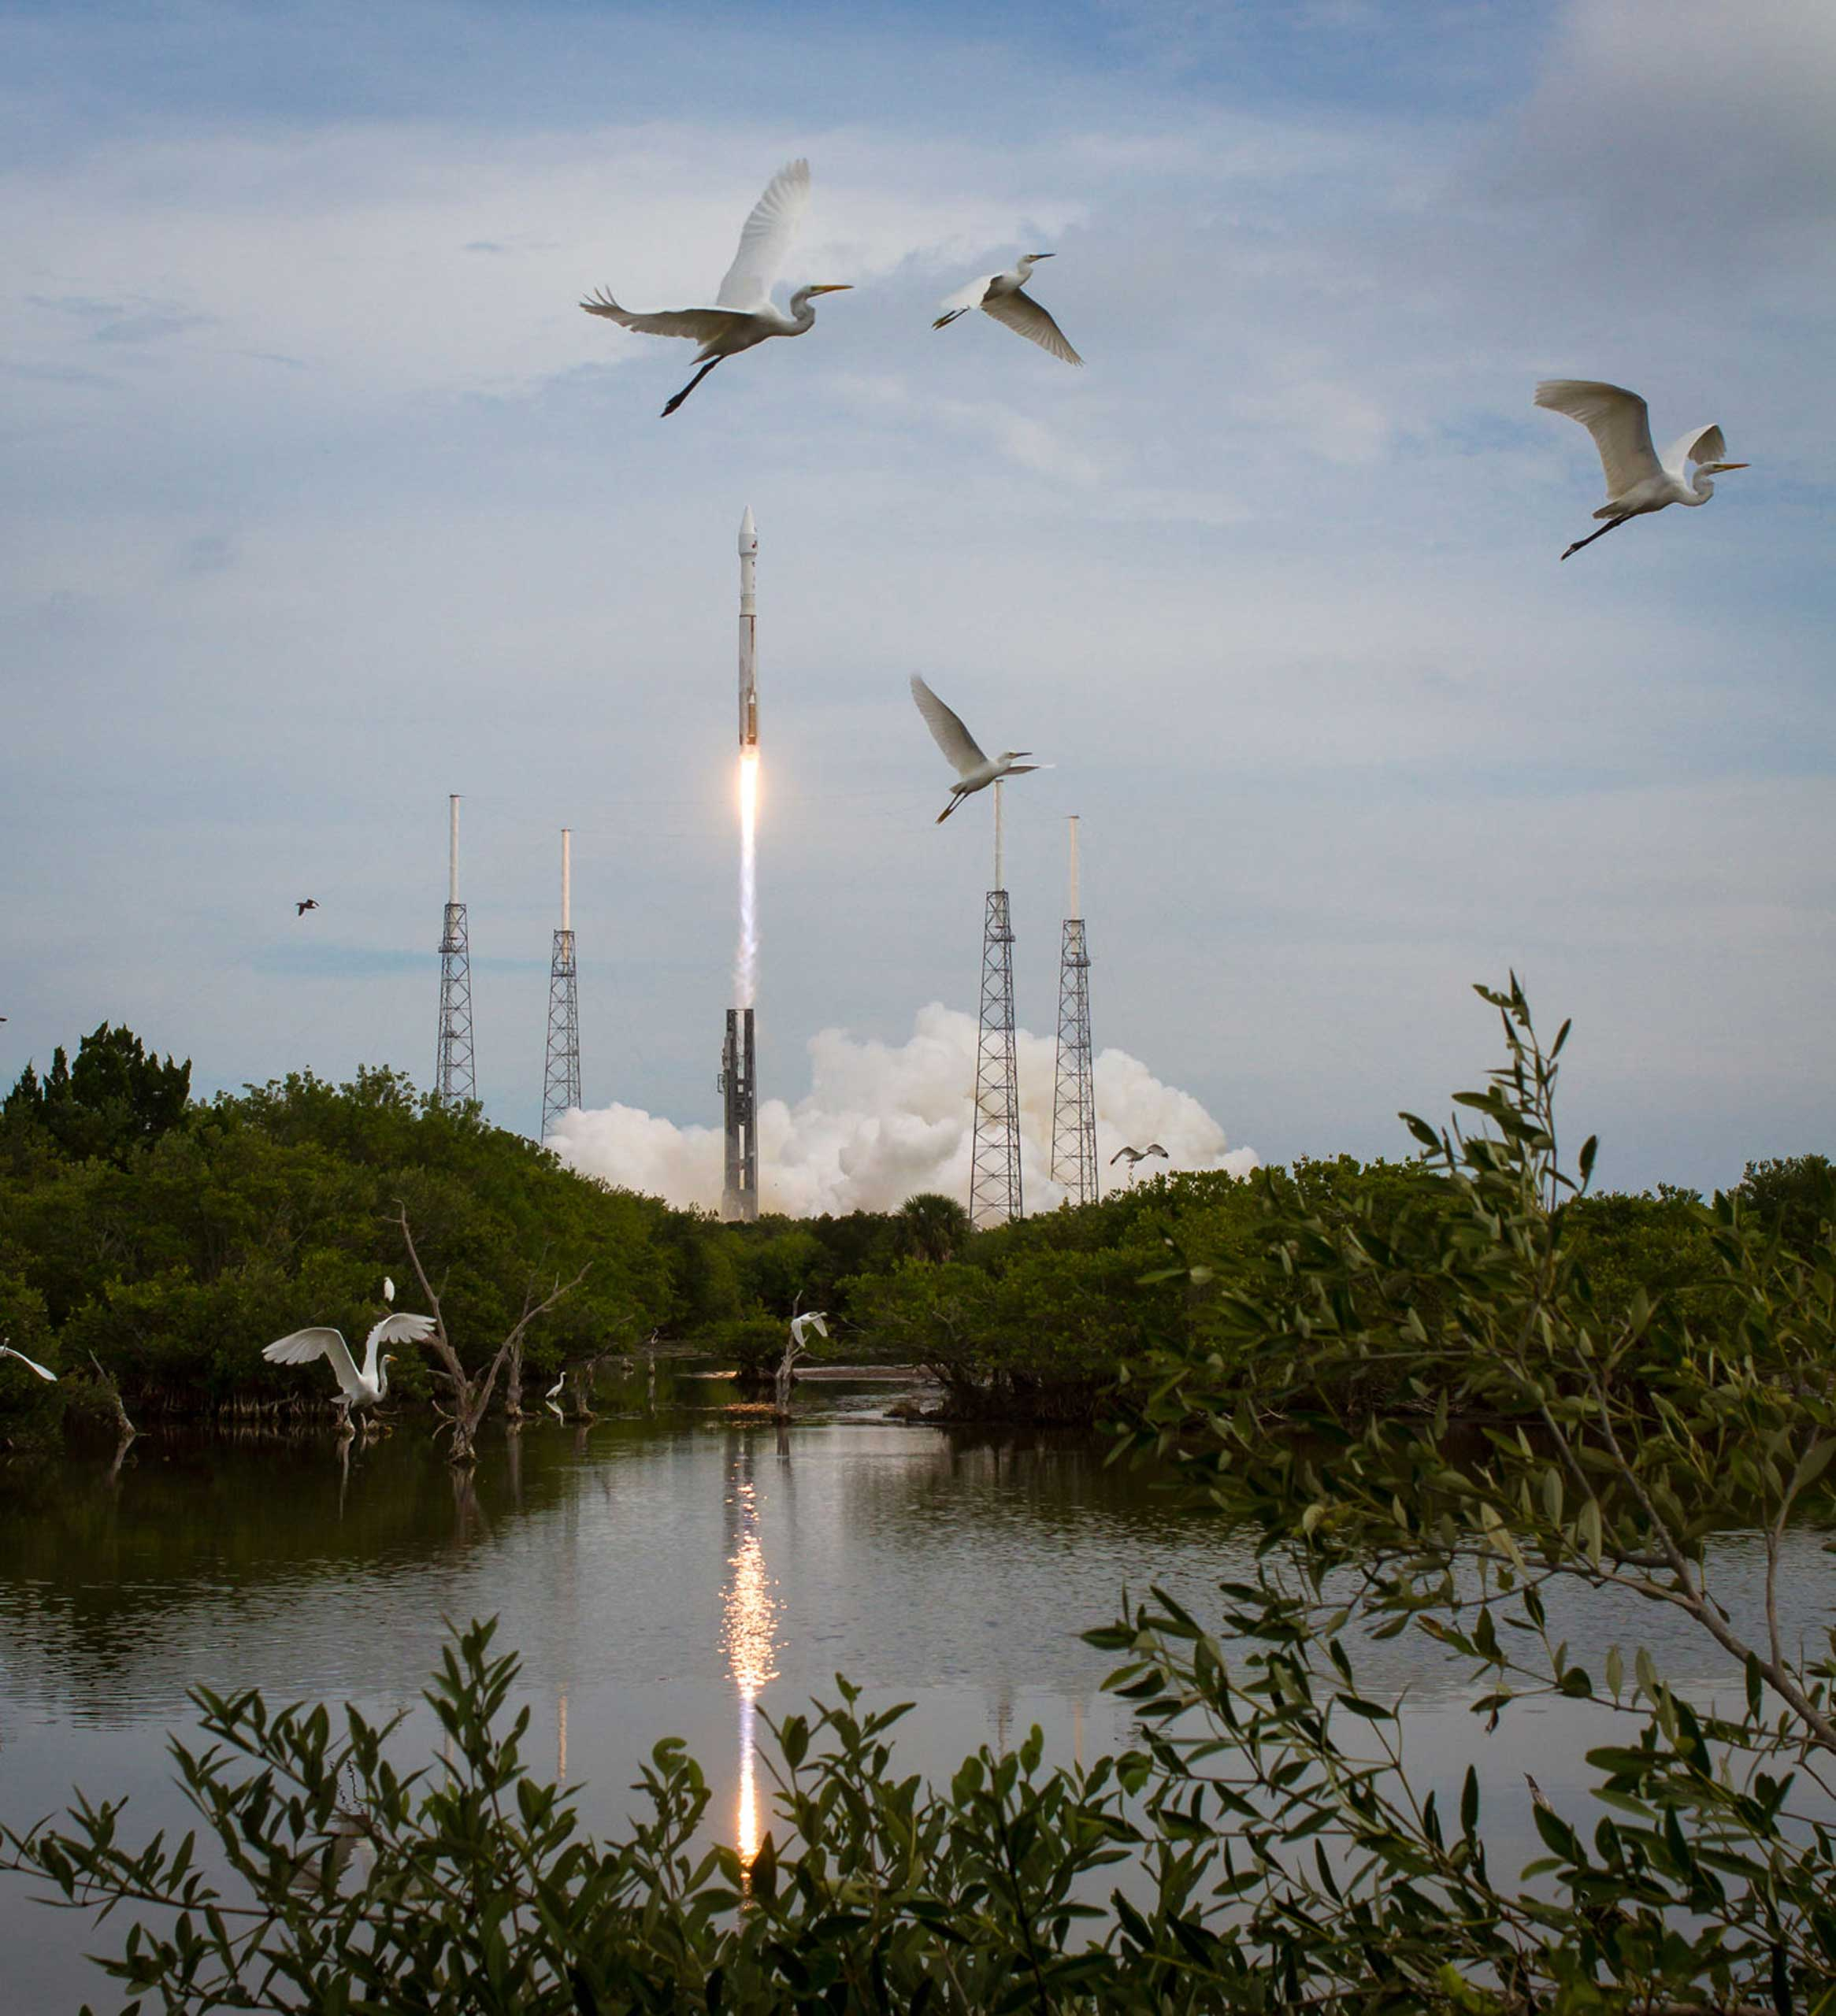 The United Launch Alliance Atlas V rocket with NASA's Mars Atmosphere and Volatile EvolutioN (MAVEN) spacecraft launches from the Cape Canaveral Air Force Station Space Launch Complex on Nov. 18, 2013.